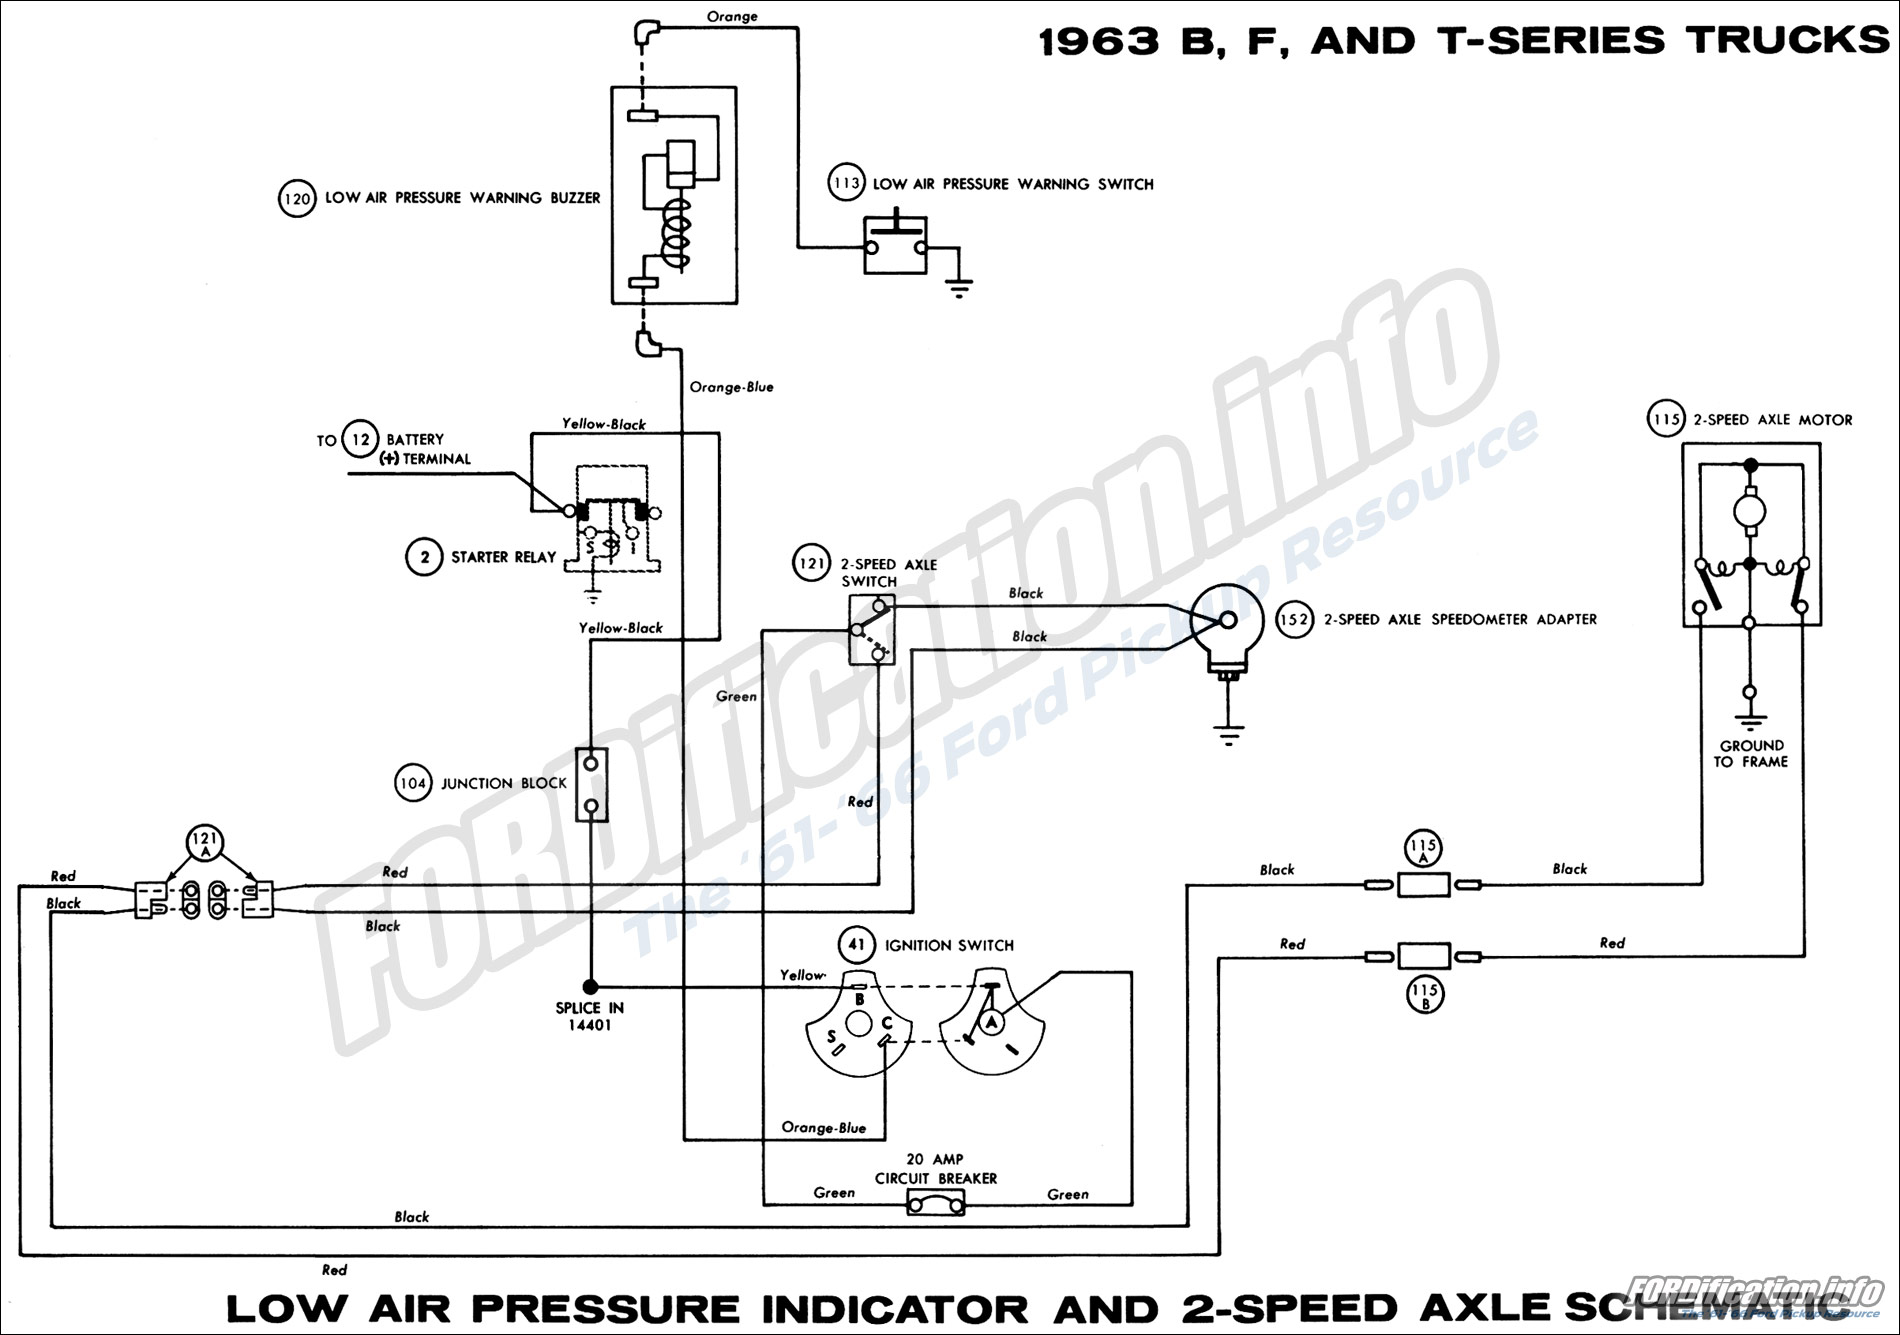 For a jd 410b wiring diagram wiring diagram fantastic videx wiring diagram component electrical diagram ideas yj wiring diagram for a jd 410b wiring diagram asfbconference2016 Images